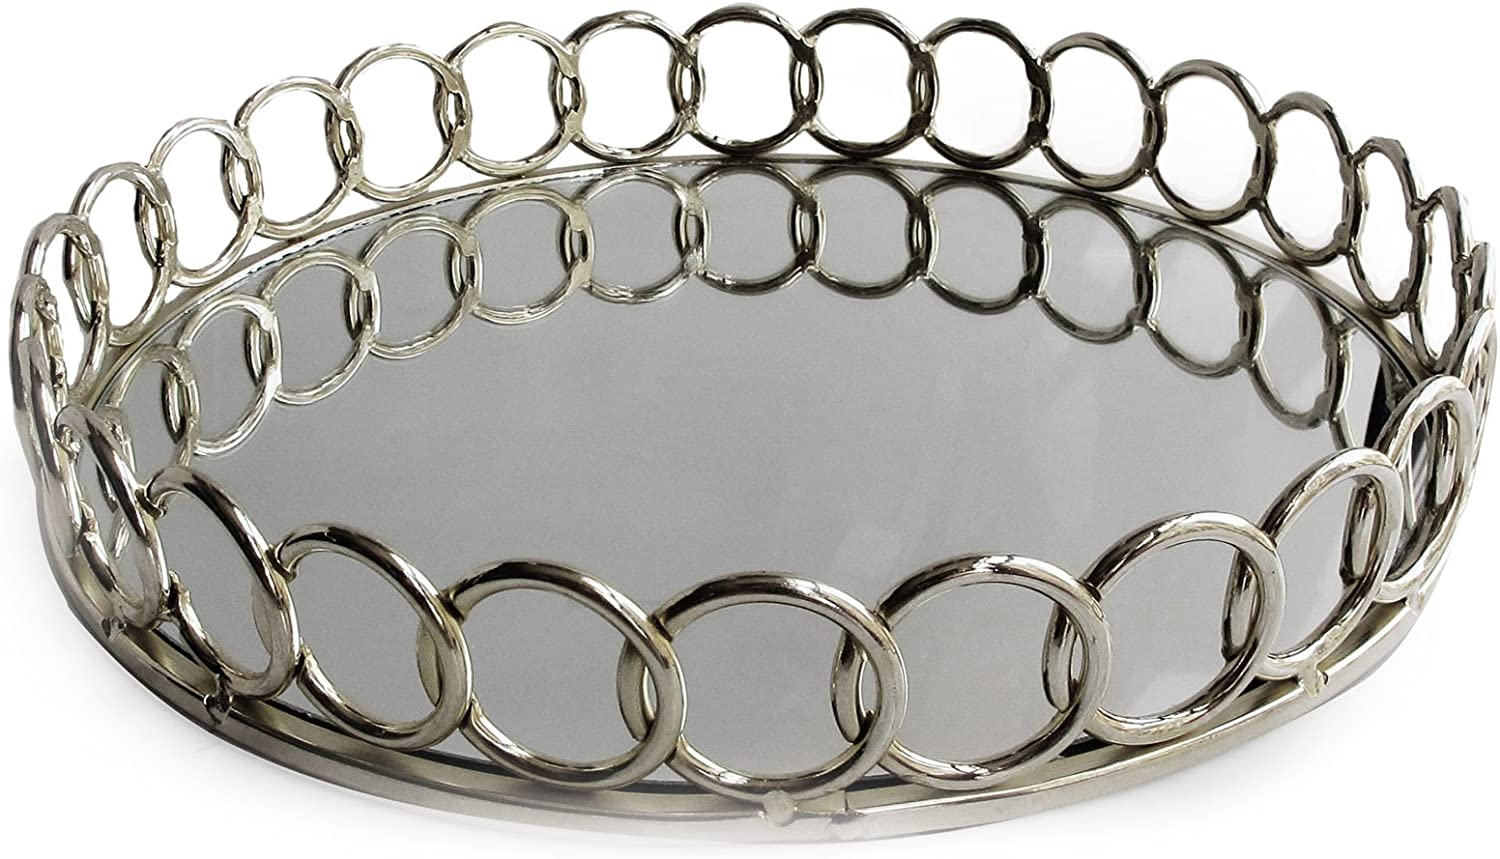 American Atelier 1332747 Looped Round Mirror Tray Silver